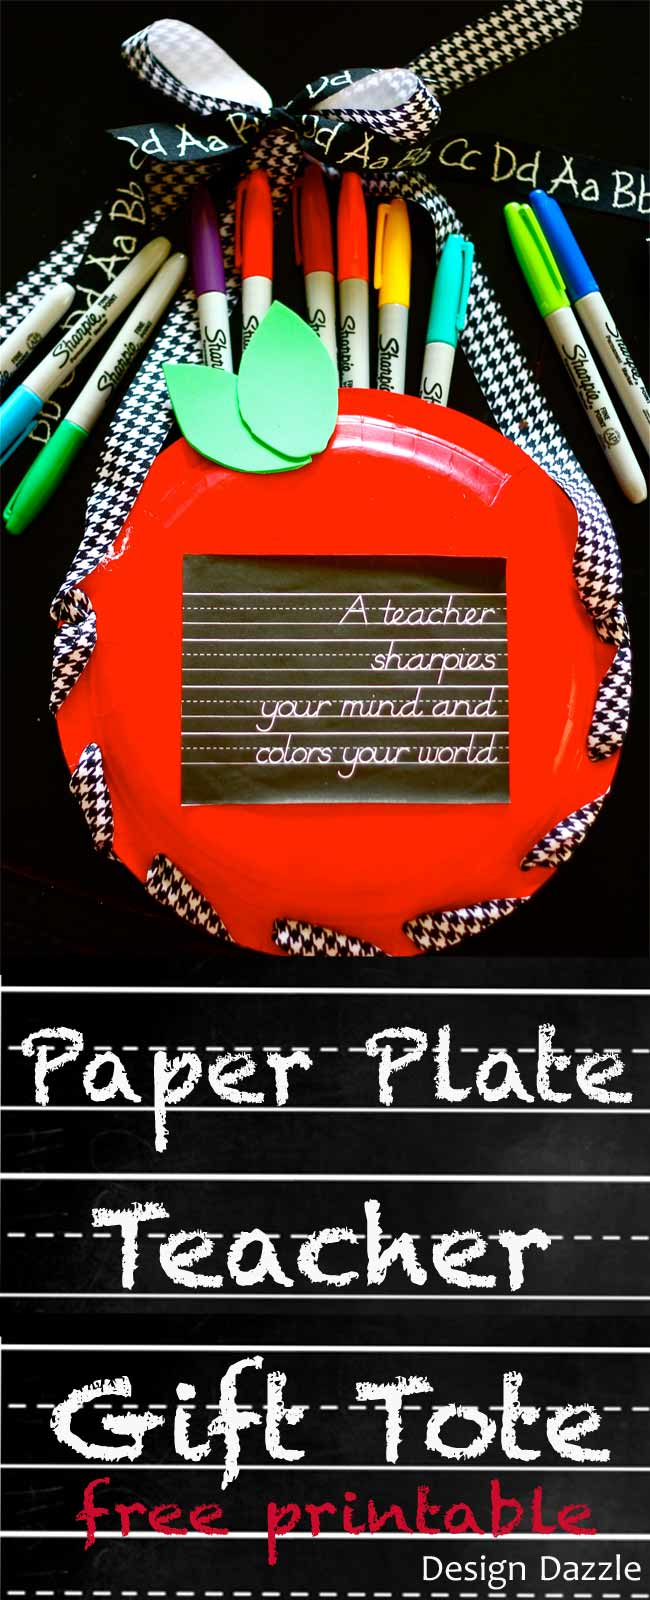 Make an easy apple gift tote for a teacher using paper plates. Free chalkboard printable reads: a teacher sharpies your mind and colors your world! Design Dazzle